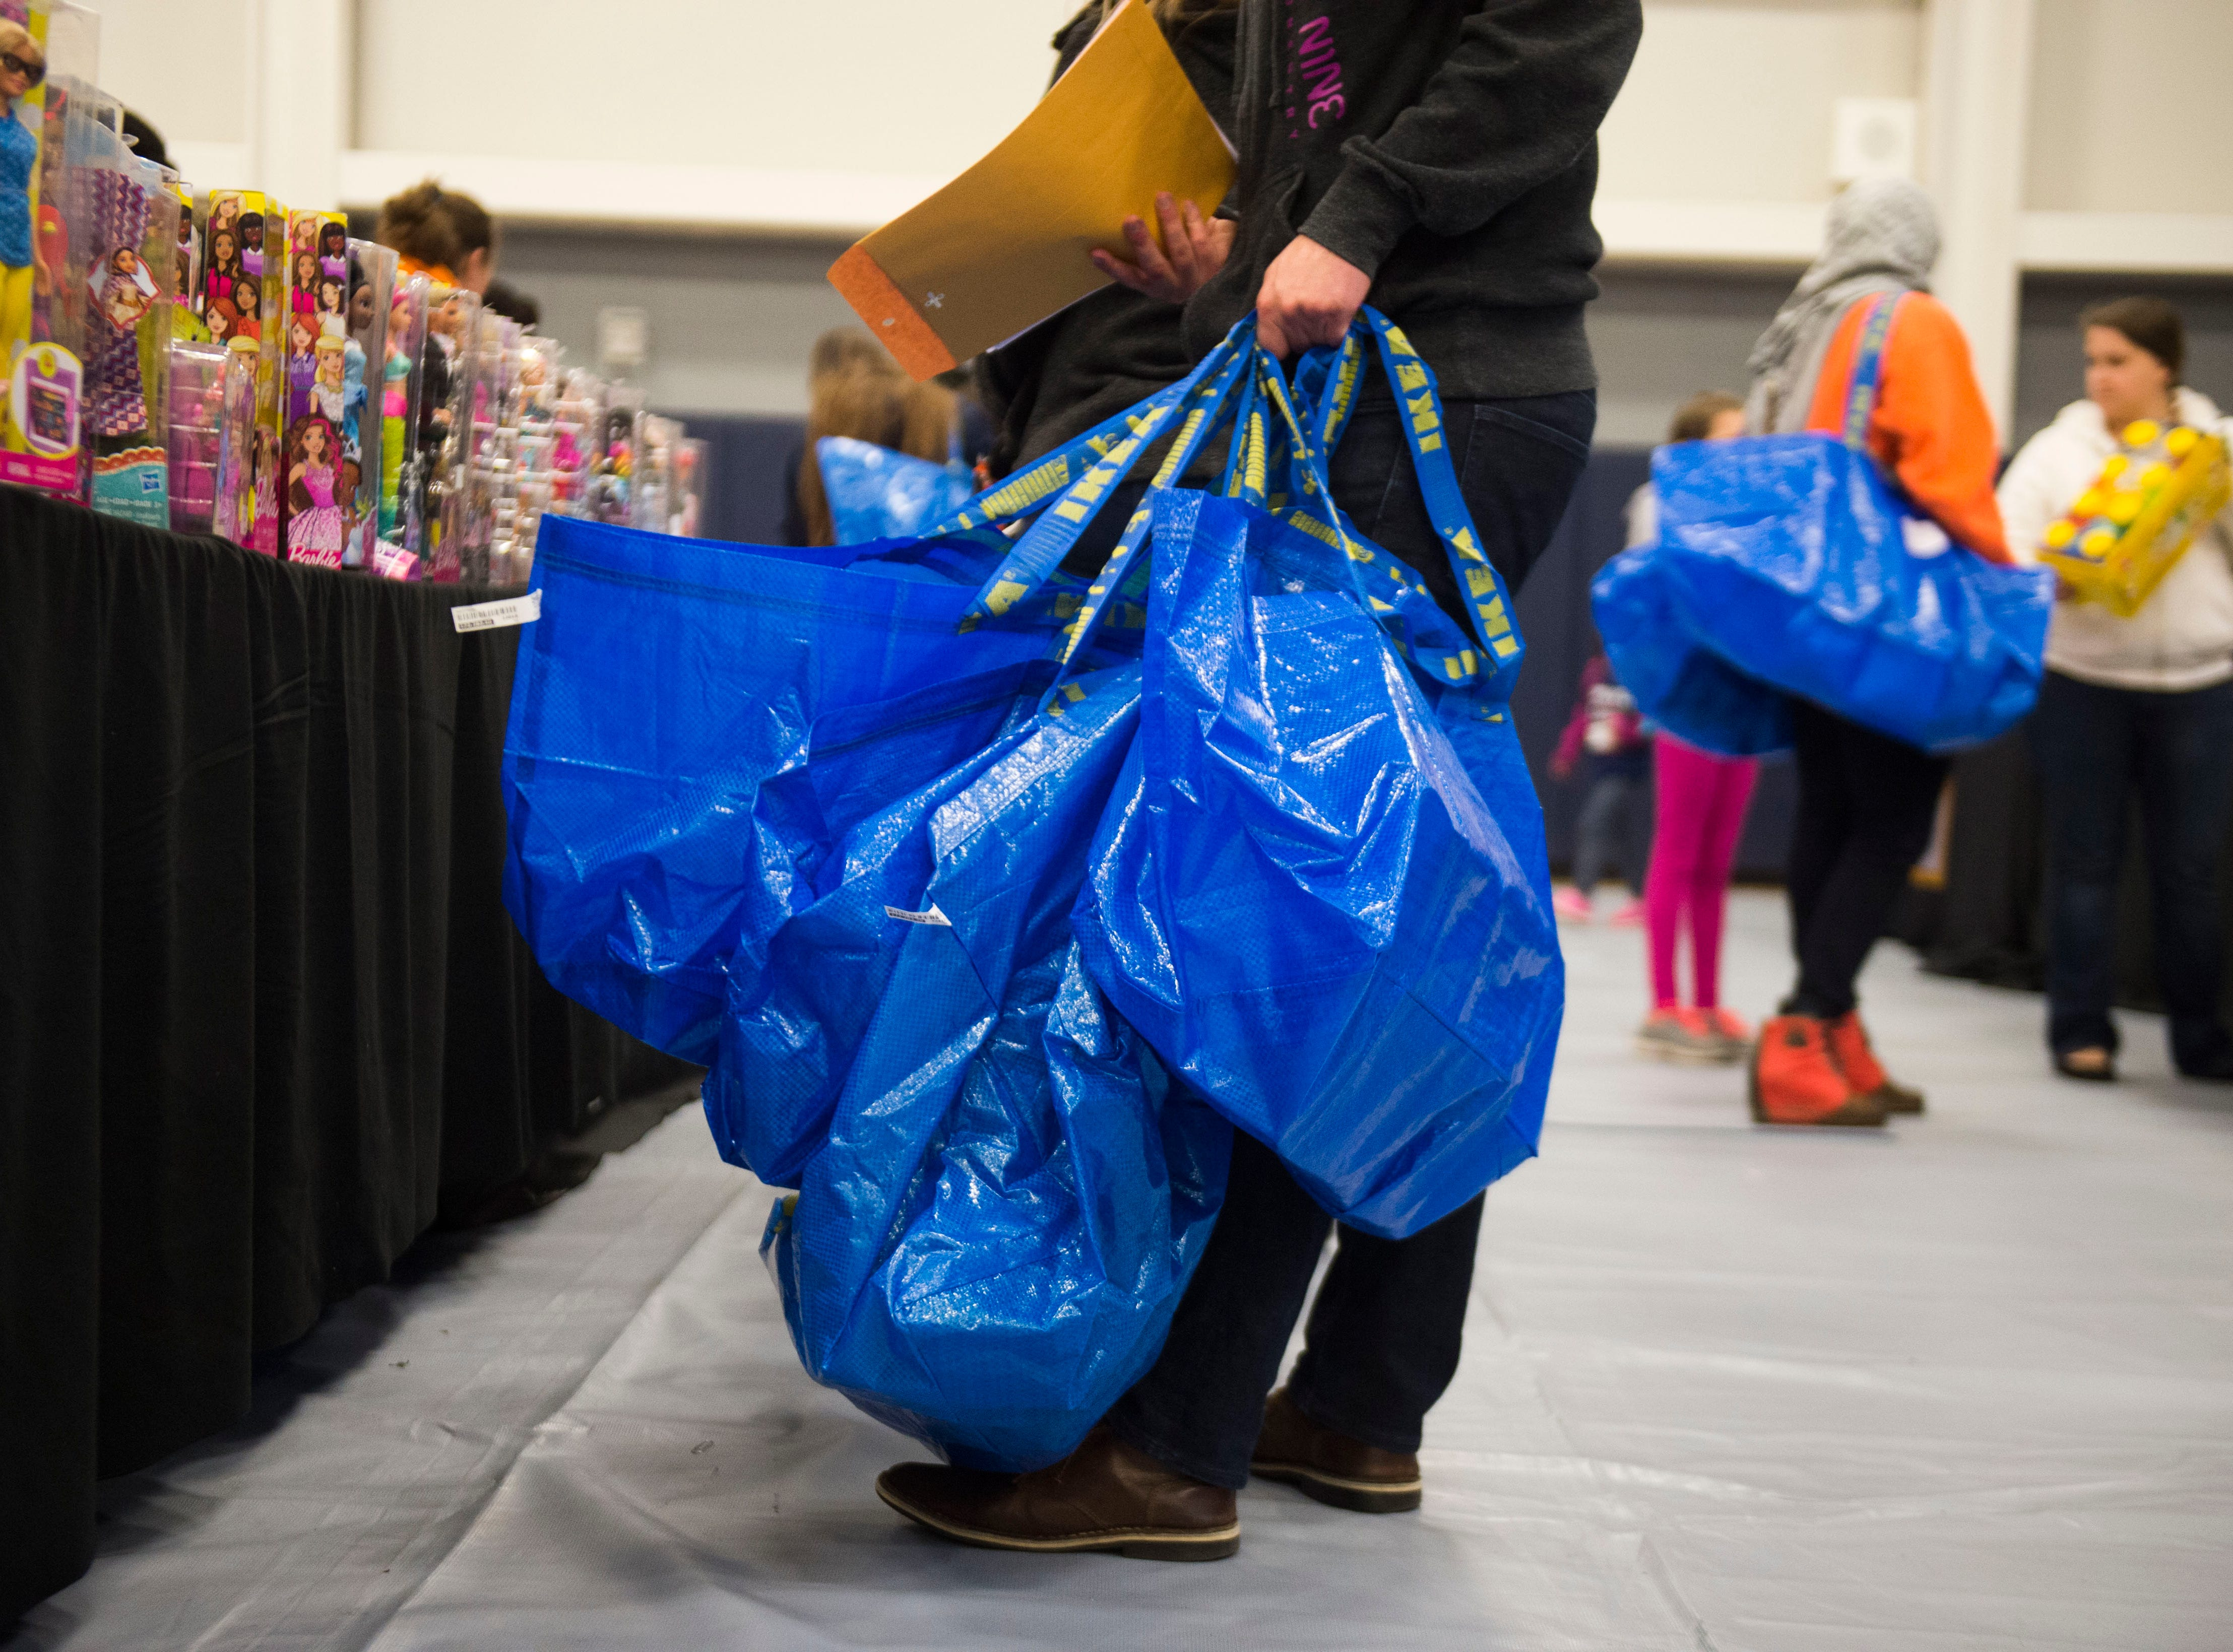 A person holds shopping bags at the Boys and Girls Clubs Regal Teen Center in Knoxville Saturday, Dec. 8, 2018. Parents, grandparents or guardians of over 1,500 underserved children were able to pick out a limited number of free gifts for their child.